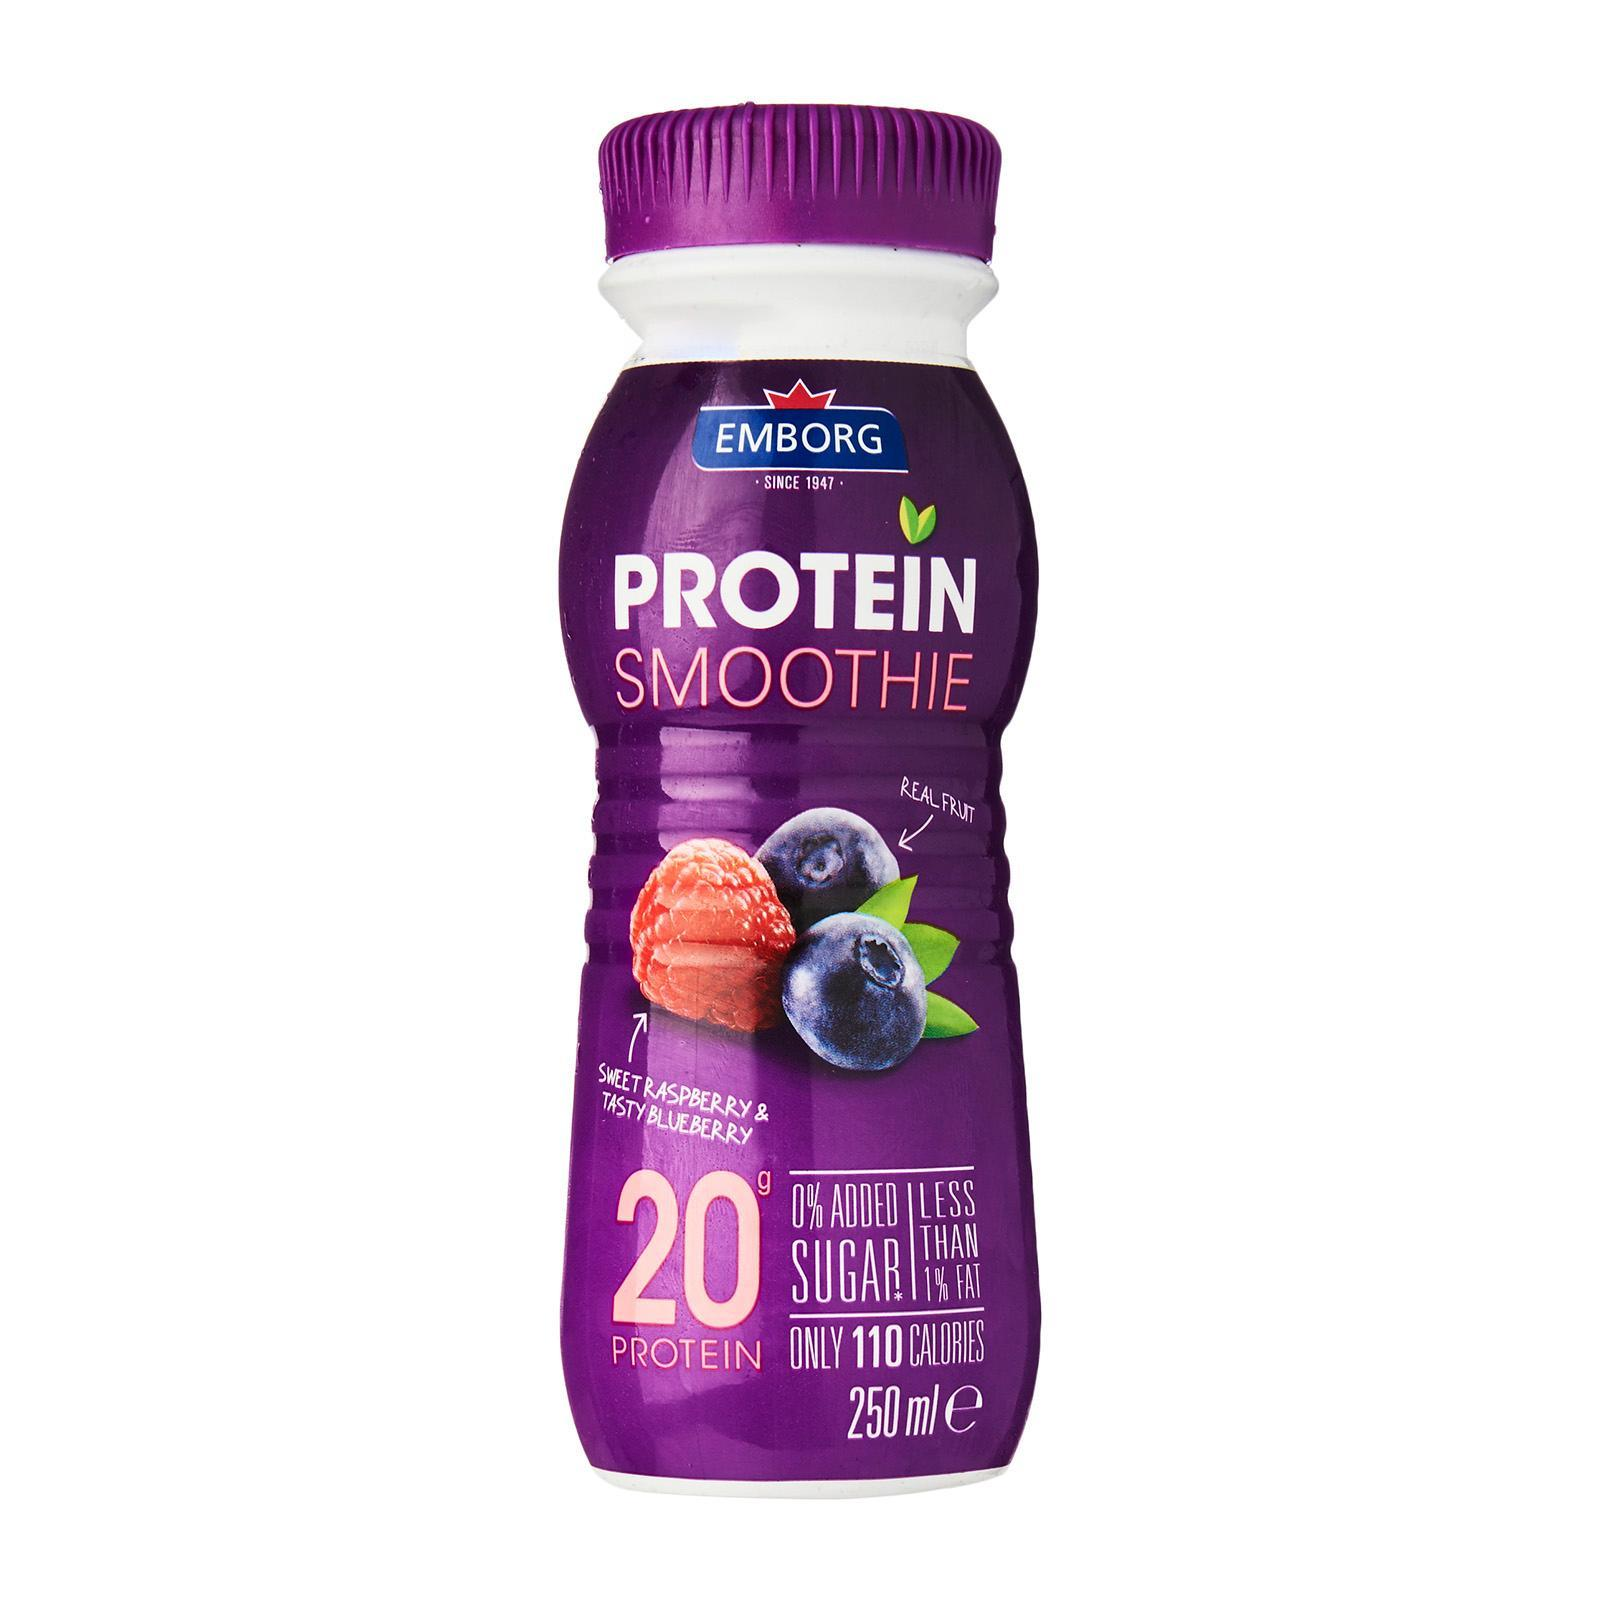 EMBORG Protein Smoothie Raspberry & Blueberry 250ml